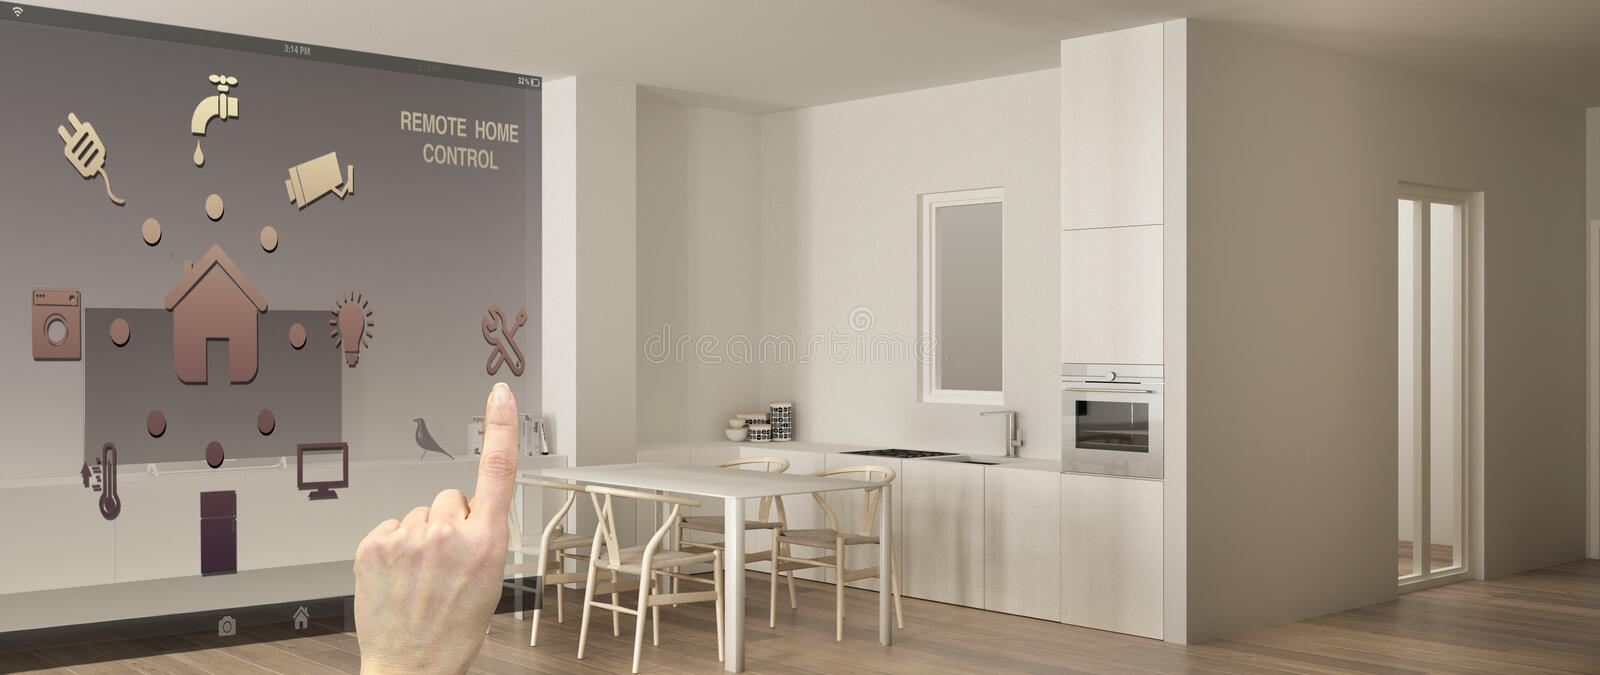 Smart remote home control system on a digital tablet. Device with app icons. Modern minimalist white kitchen with dining table in royalty free illustration